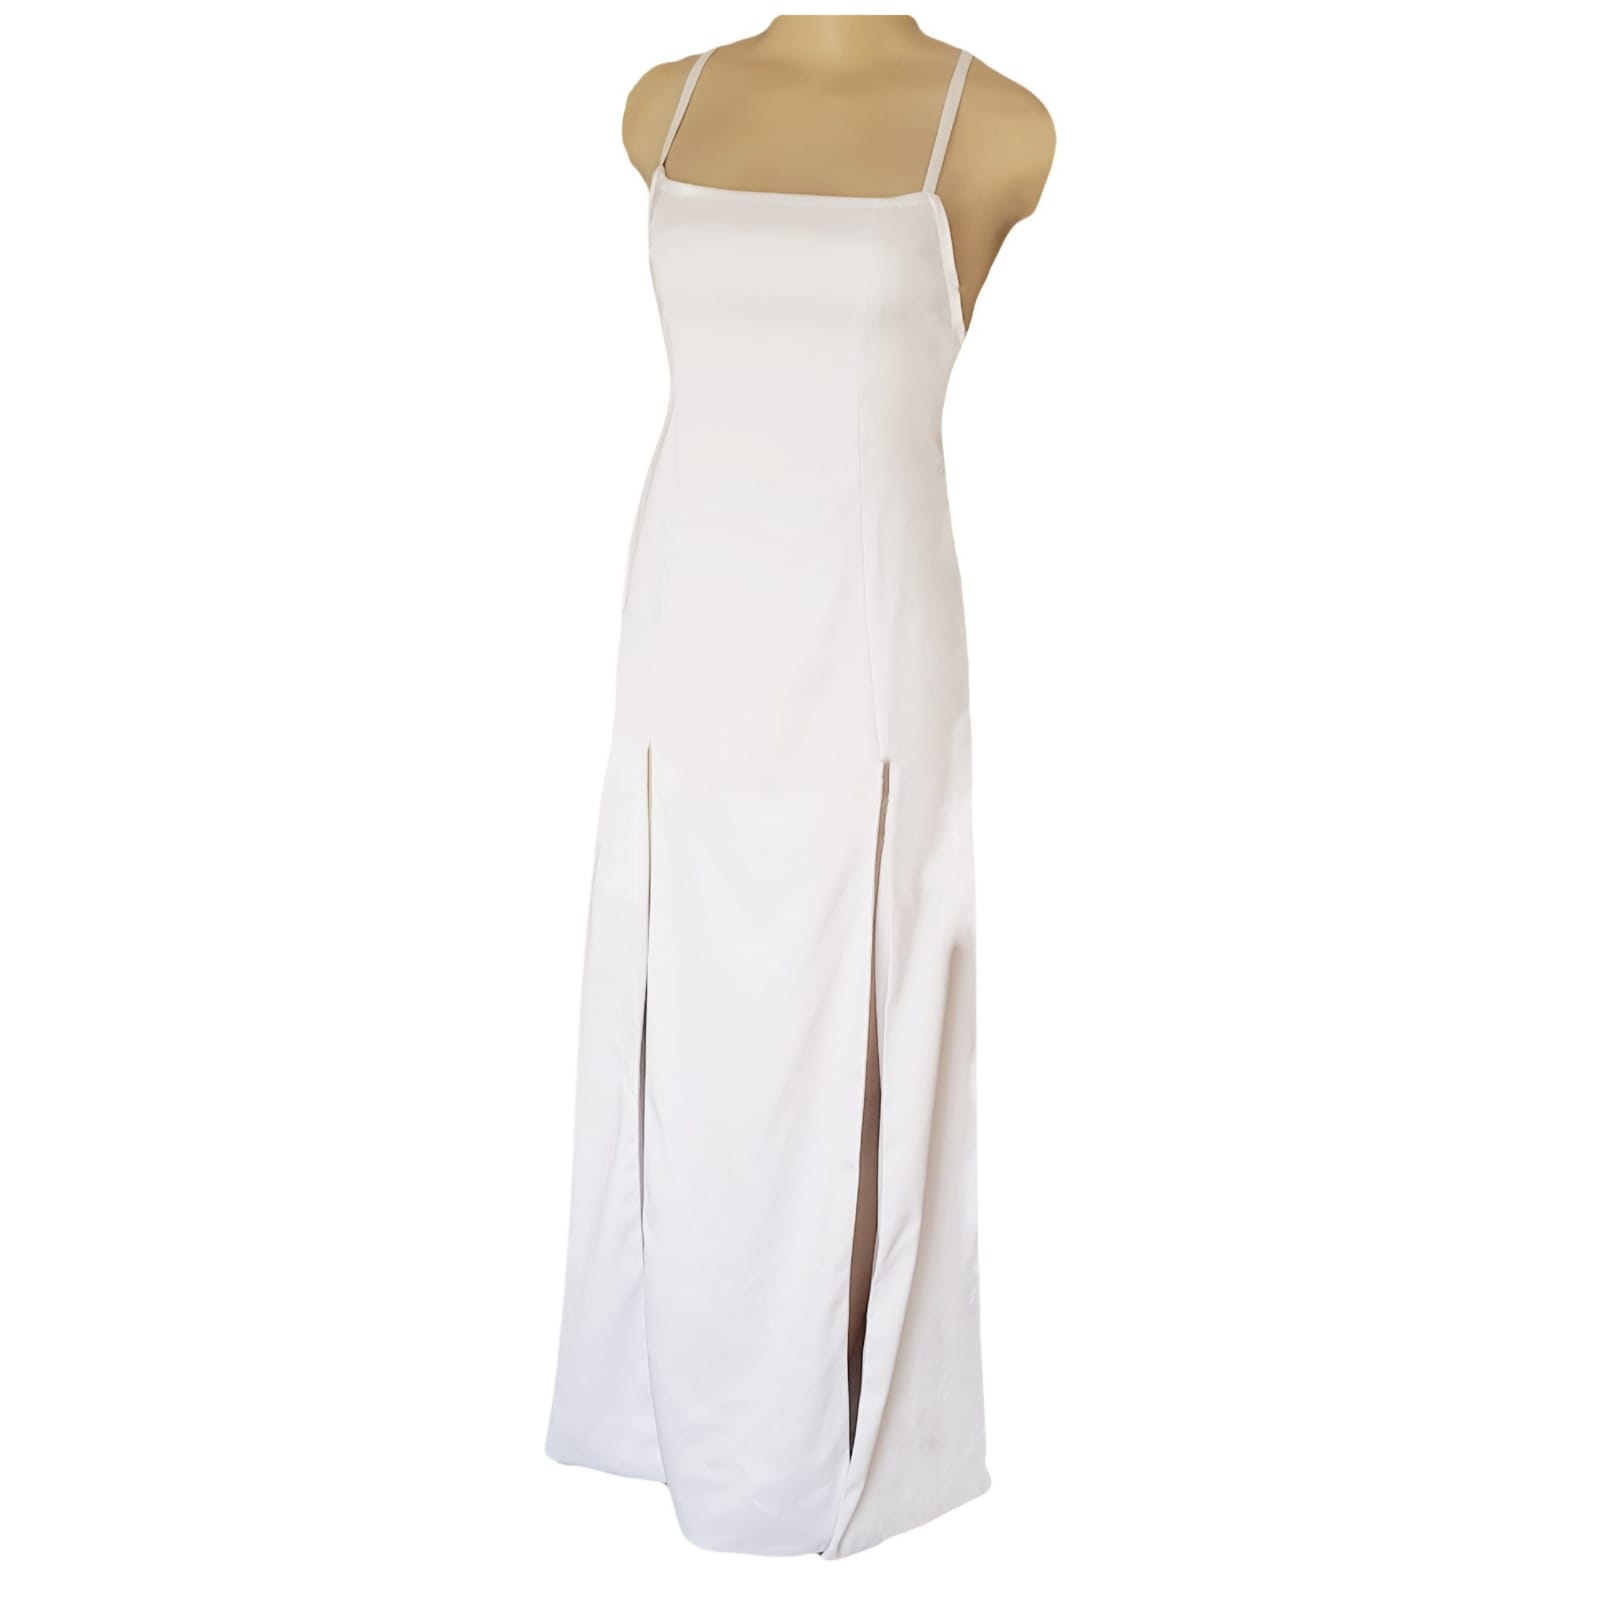 White satin long prom dress with a low open back 7 white satin long prom dress with a low open back, with strap detail. Straight neckline, 2 slits and a train.